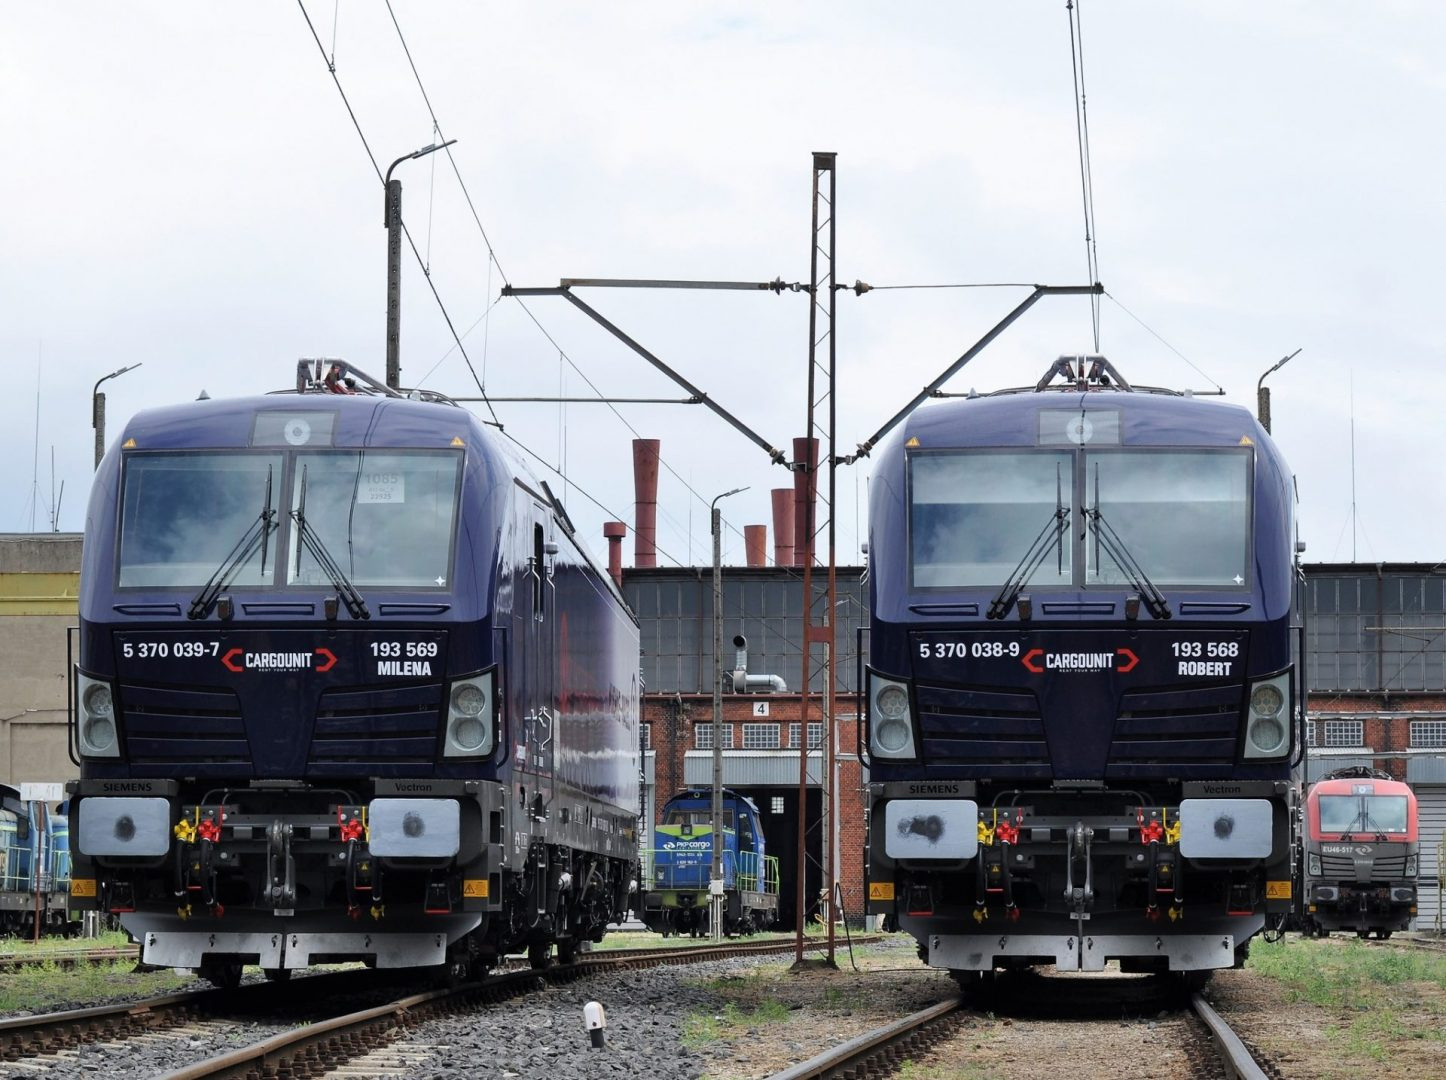 Siemens Mobility to deliver up to 30 Vectrons to Cargounit